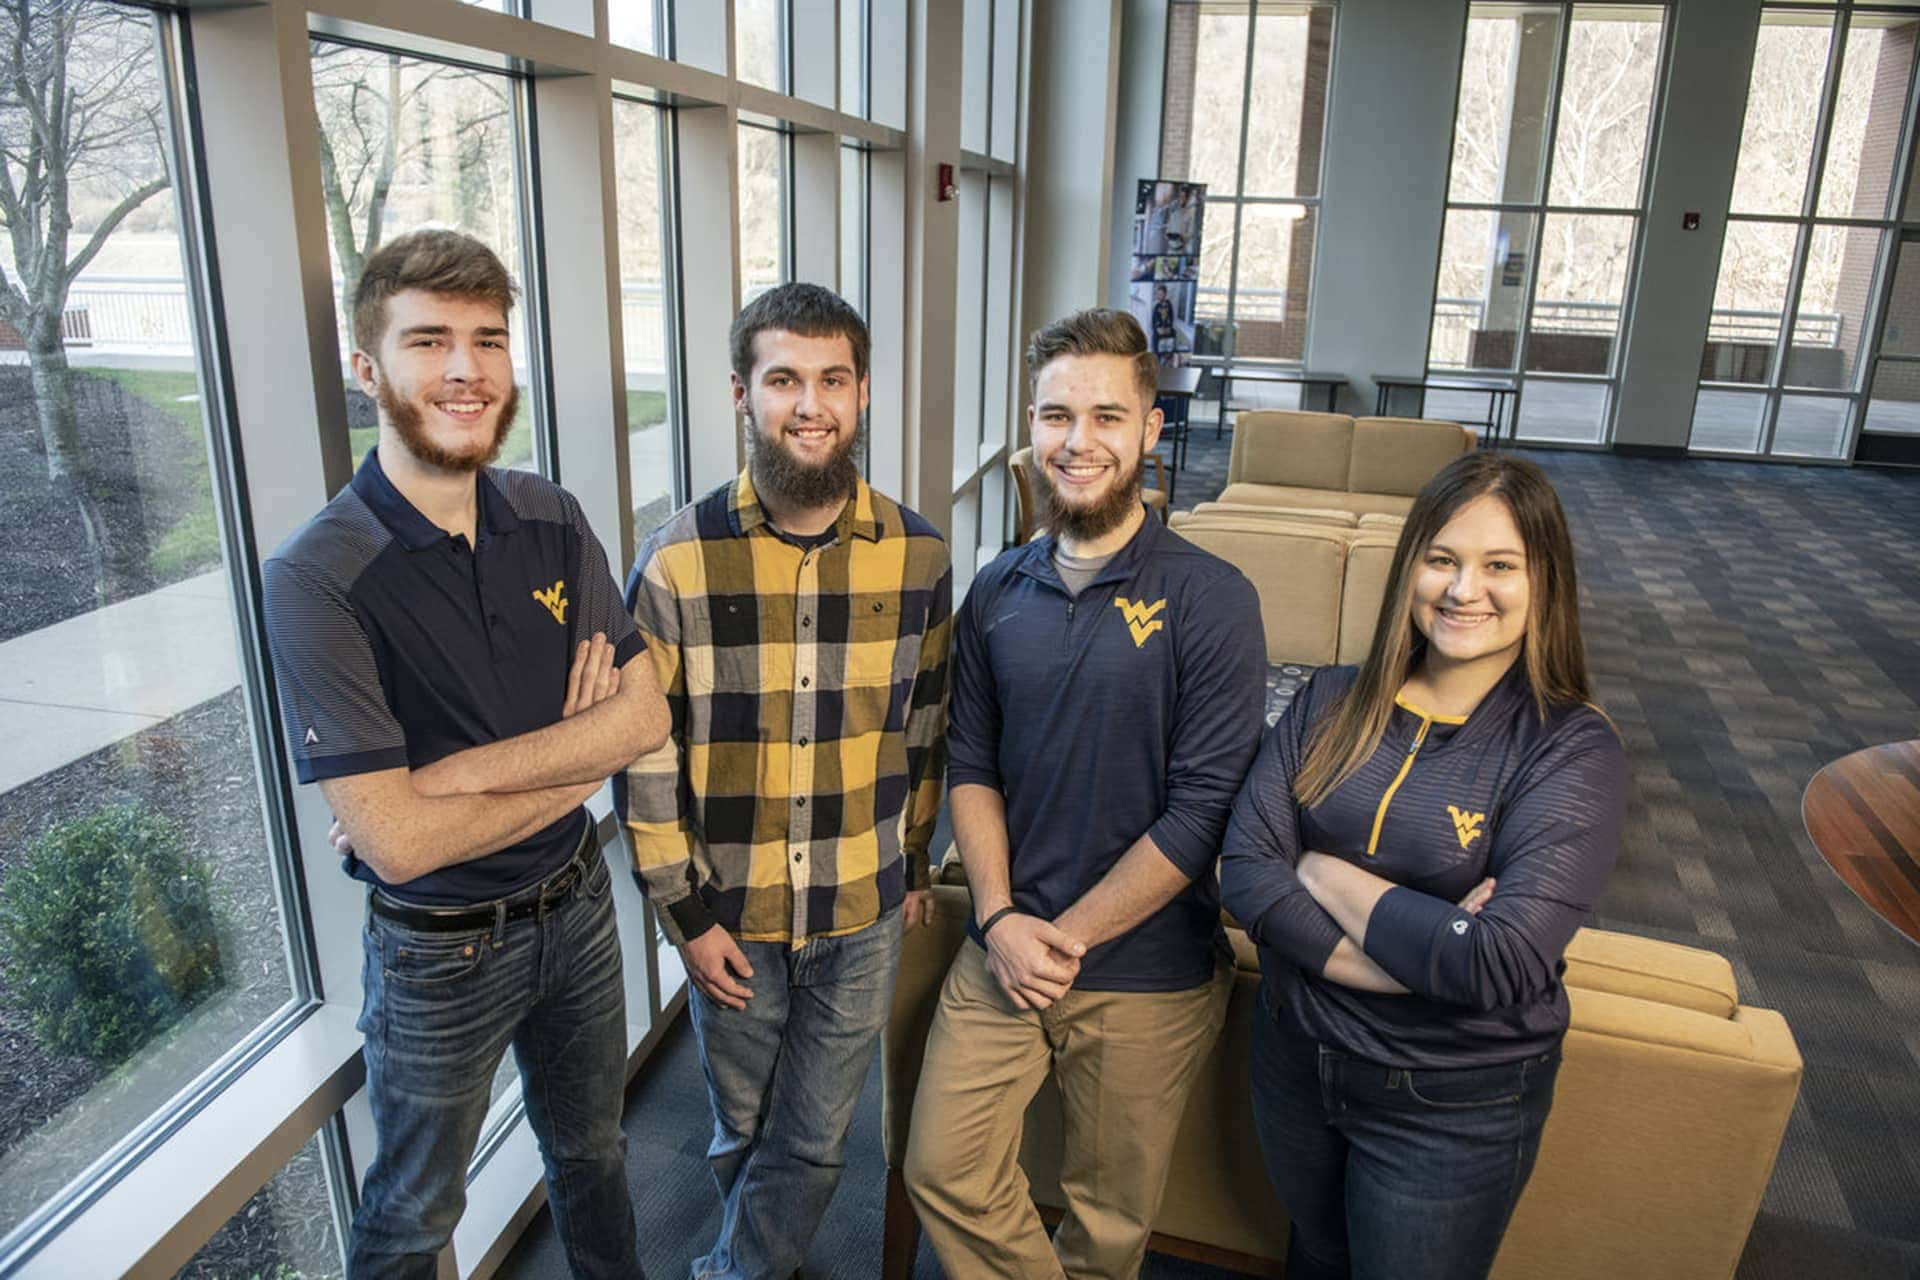 Students vying to be the next Mountaineer Mascot will compete in cheer-off